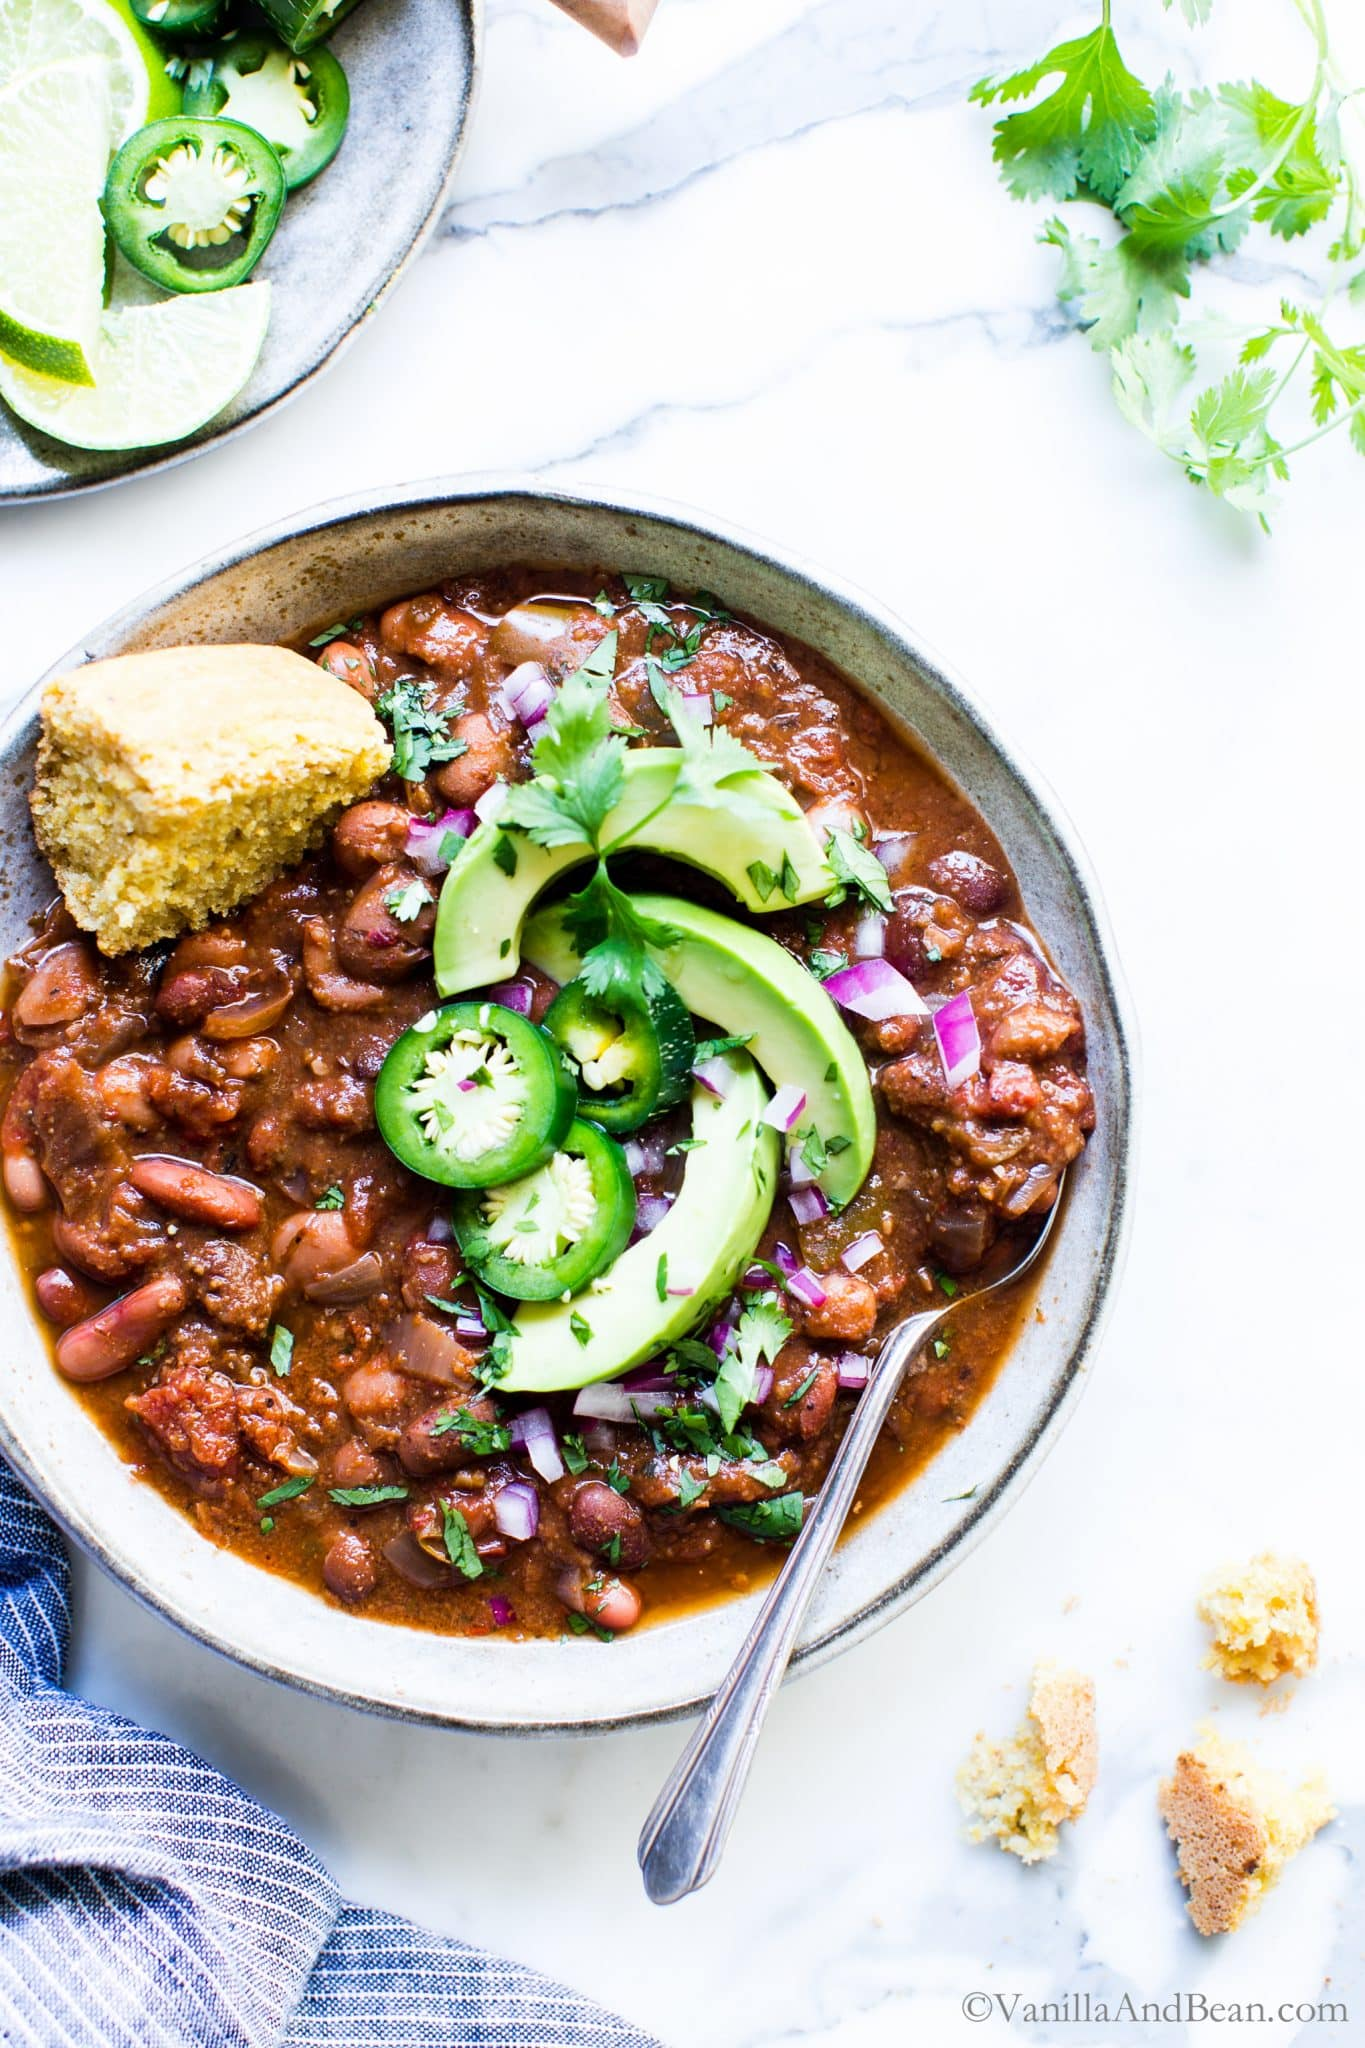 Vegetarian Chili in a bowl garnished with avocado, peppers and shared with cornbread.